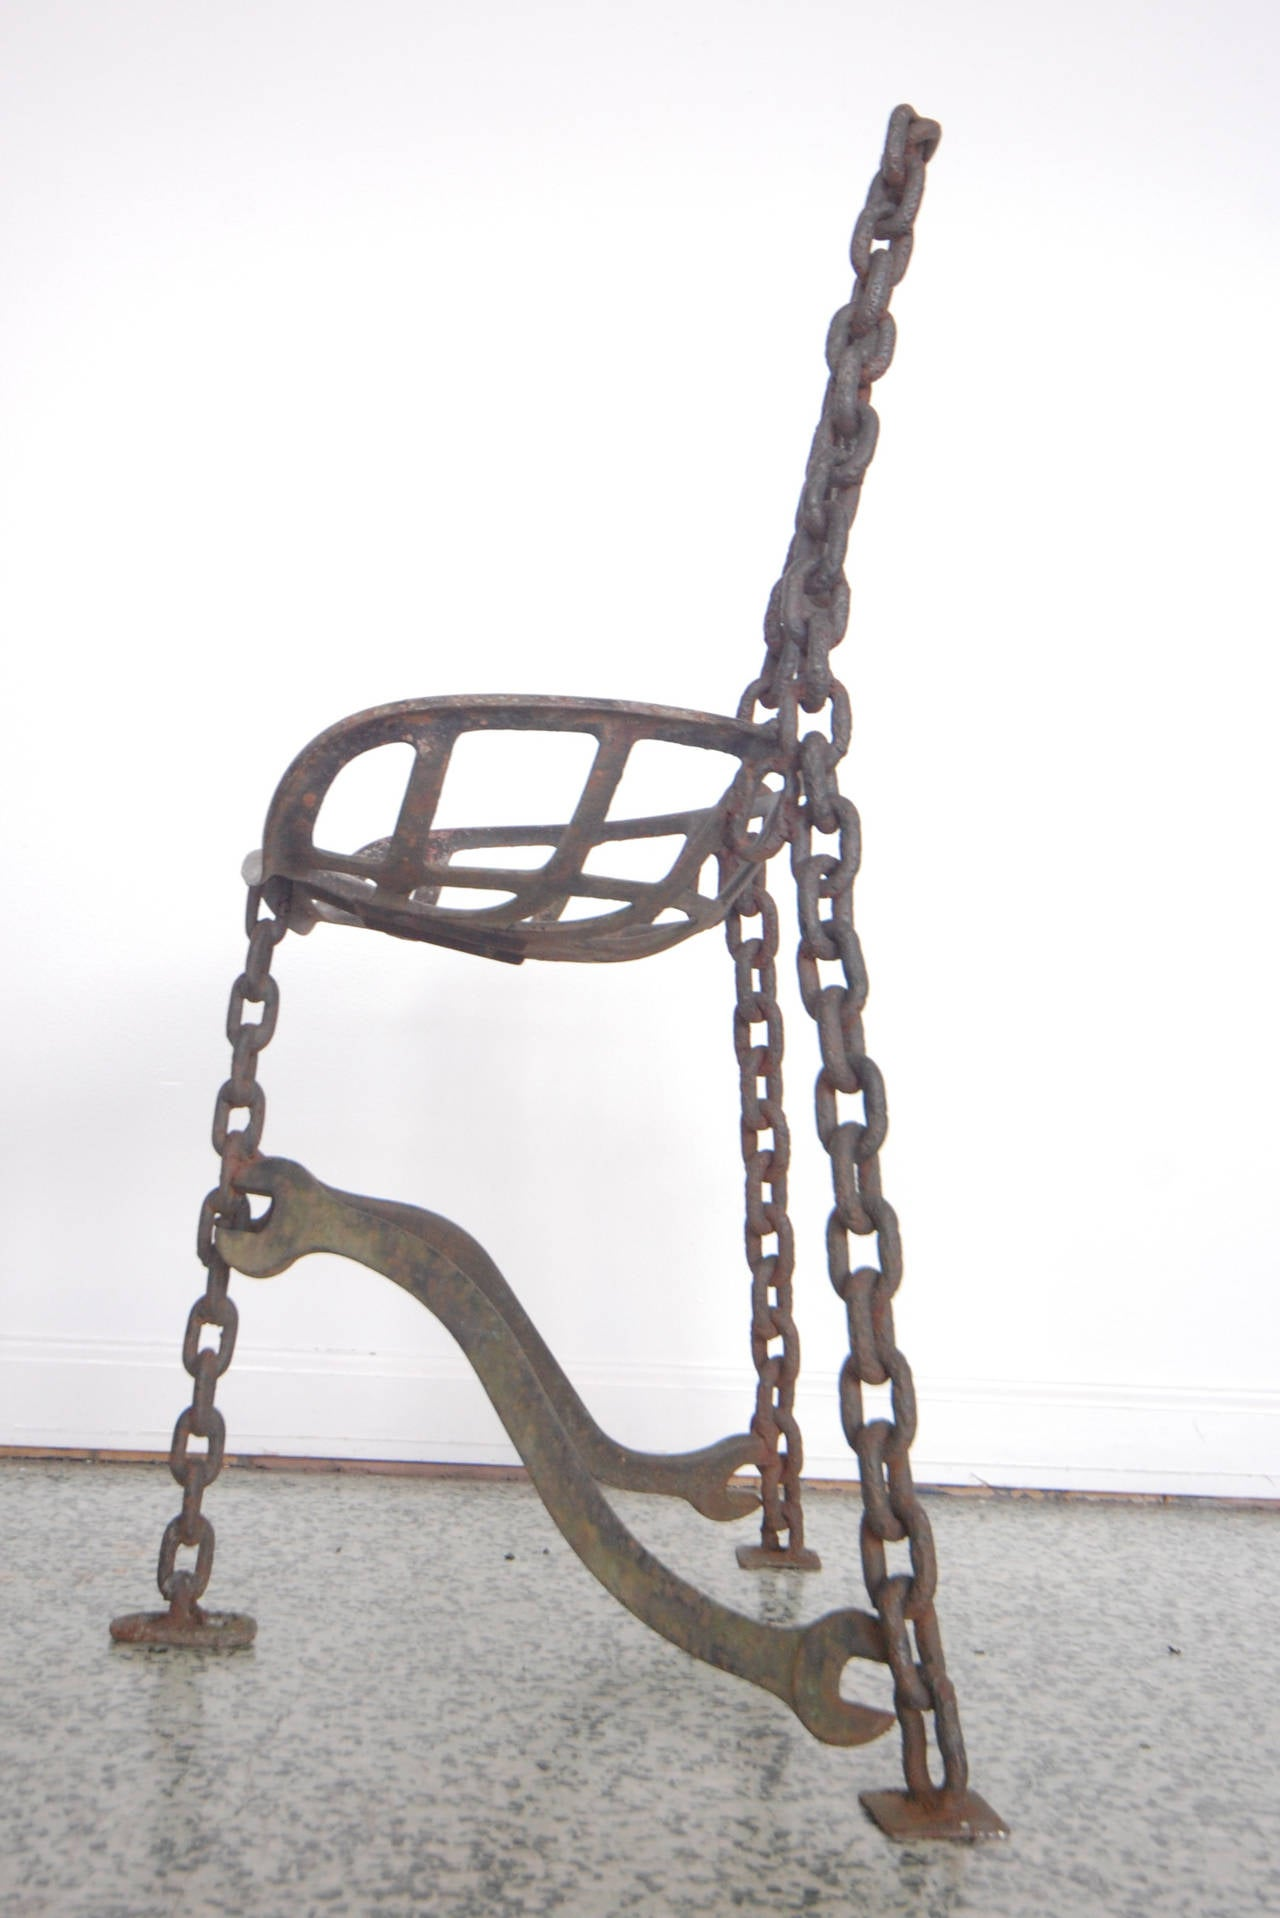 Sculptural Horseshoe Wrench Metal Folk Art Chair At 1stdibs